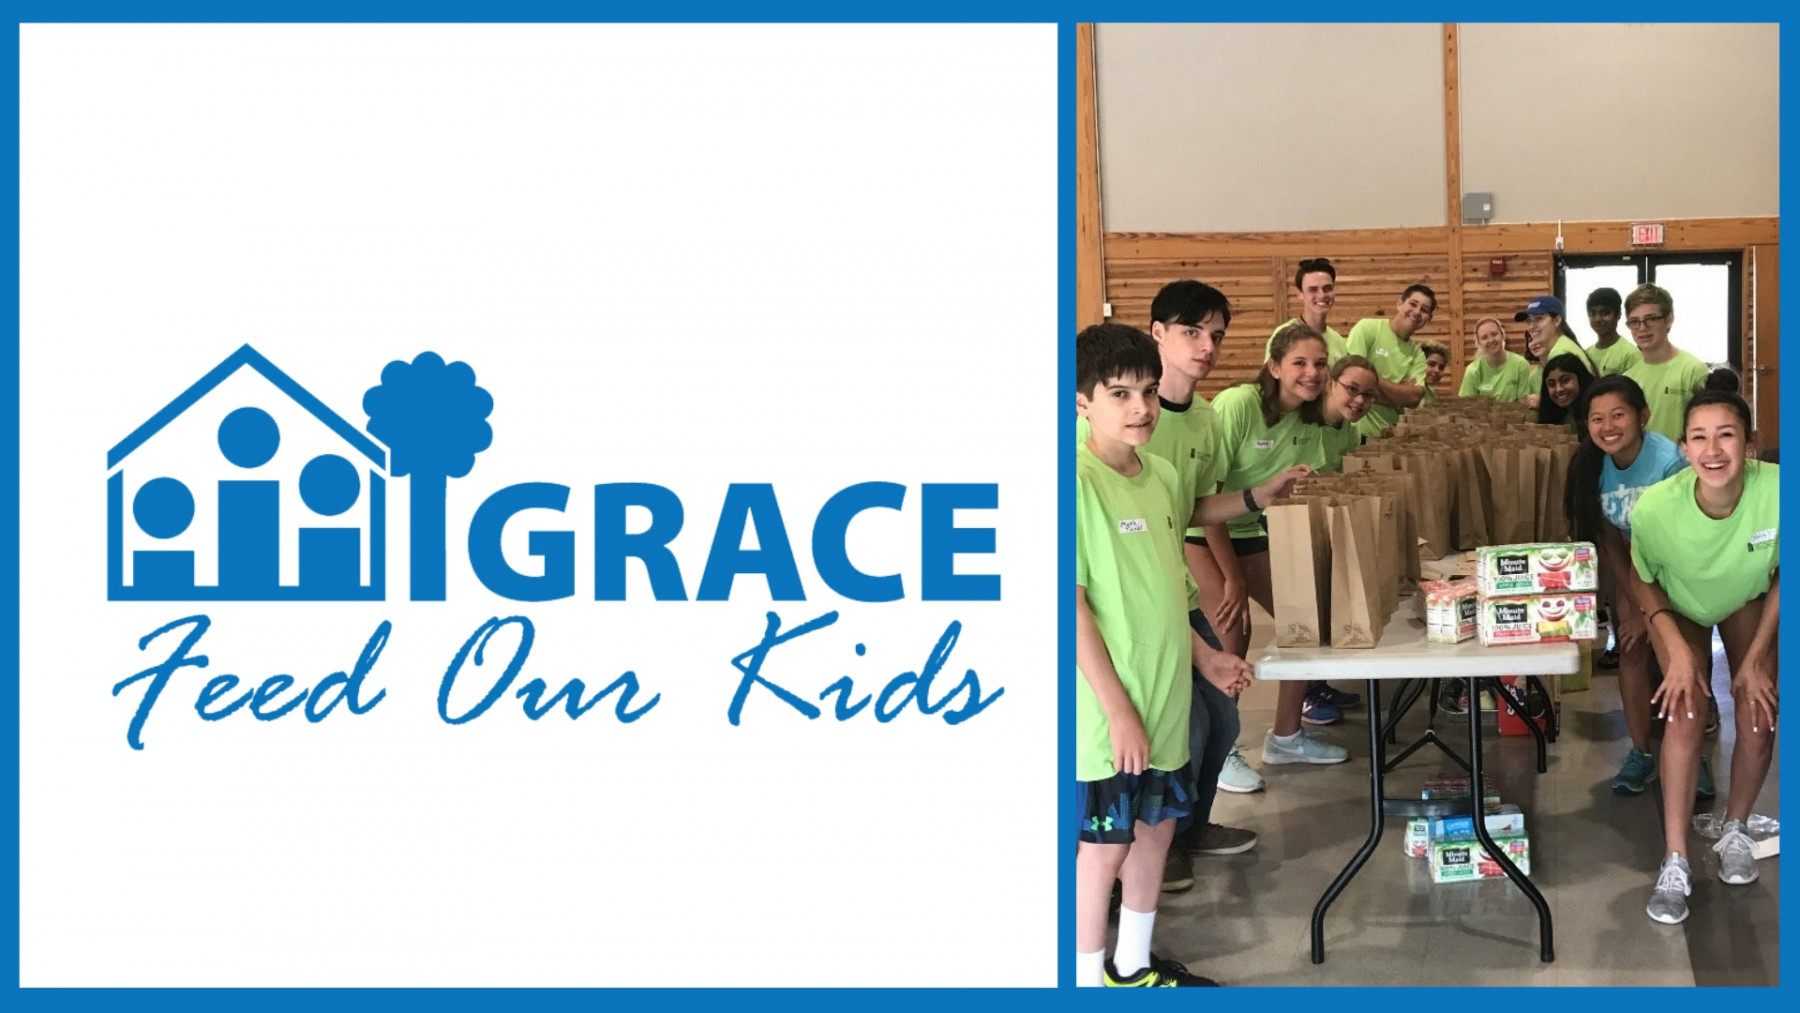 GRACE - Feed Our Kids